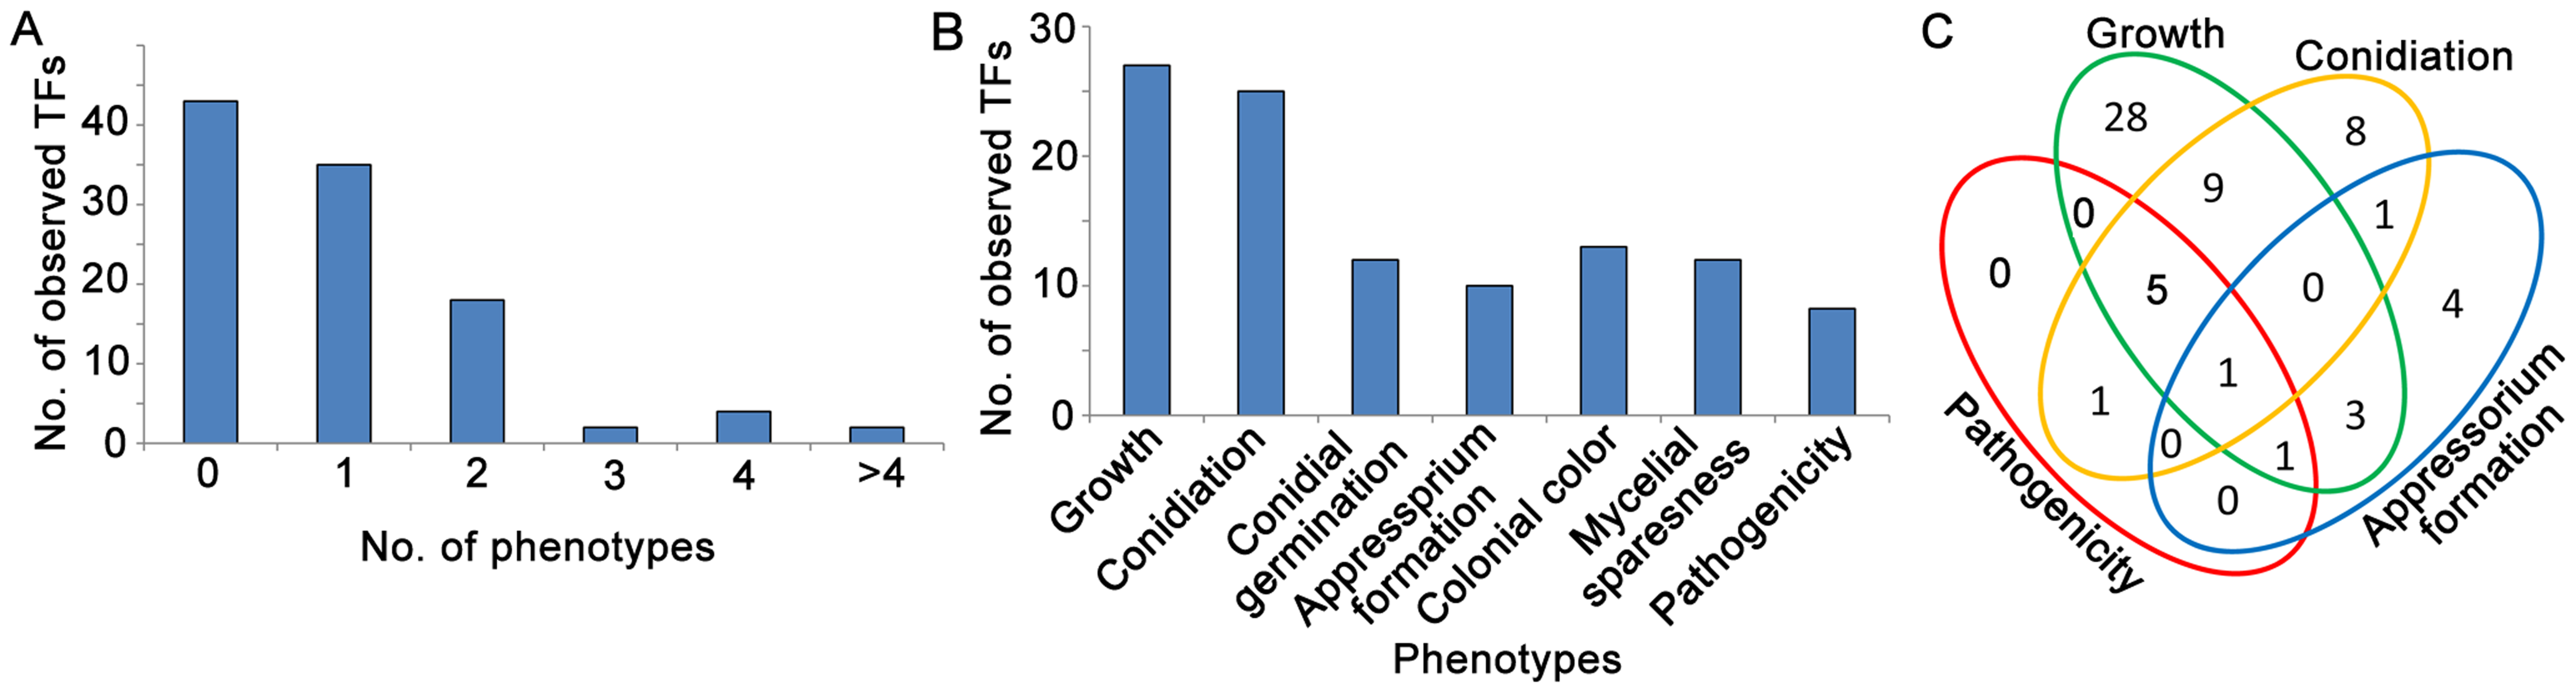 Analysis of Zn<sub>2</sub>Cys<sub>6</sub> transcription factor mutant phenotypes in fungal development stages.